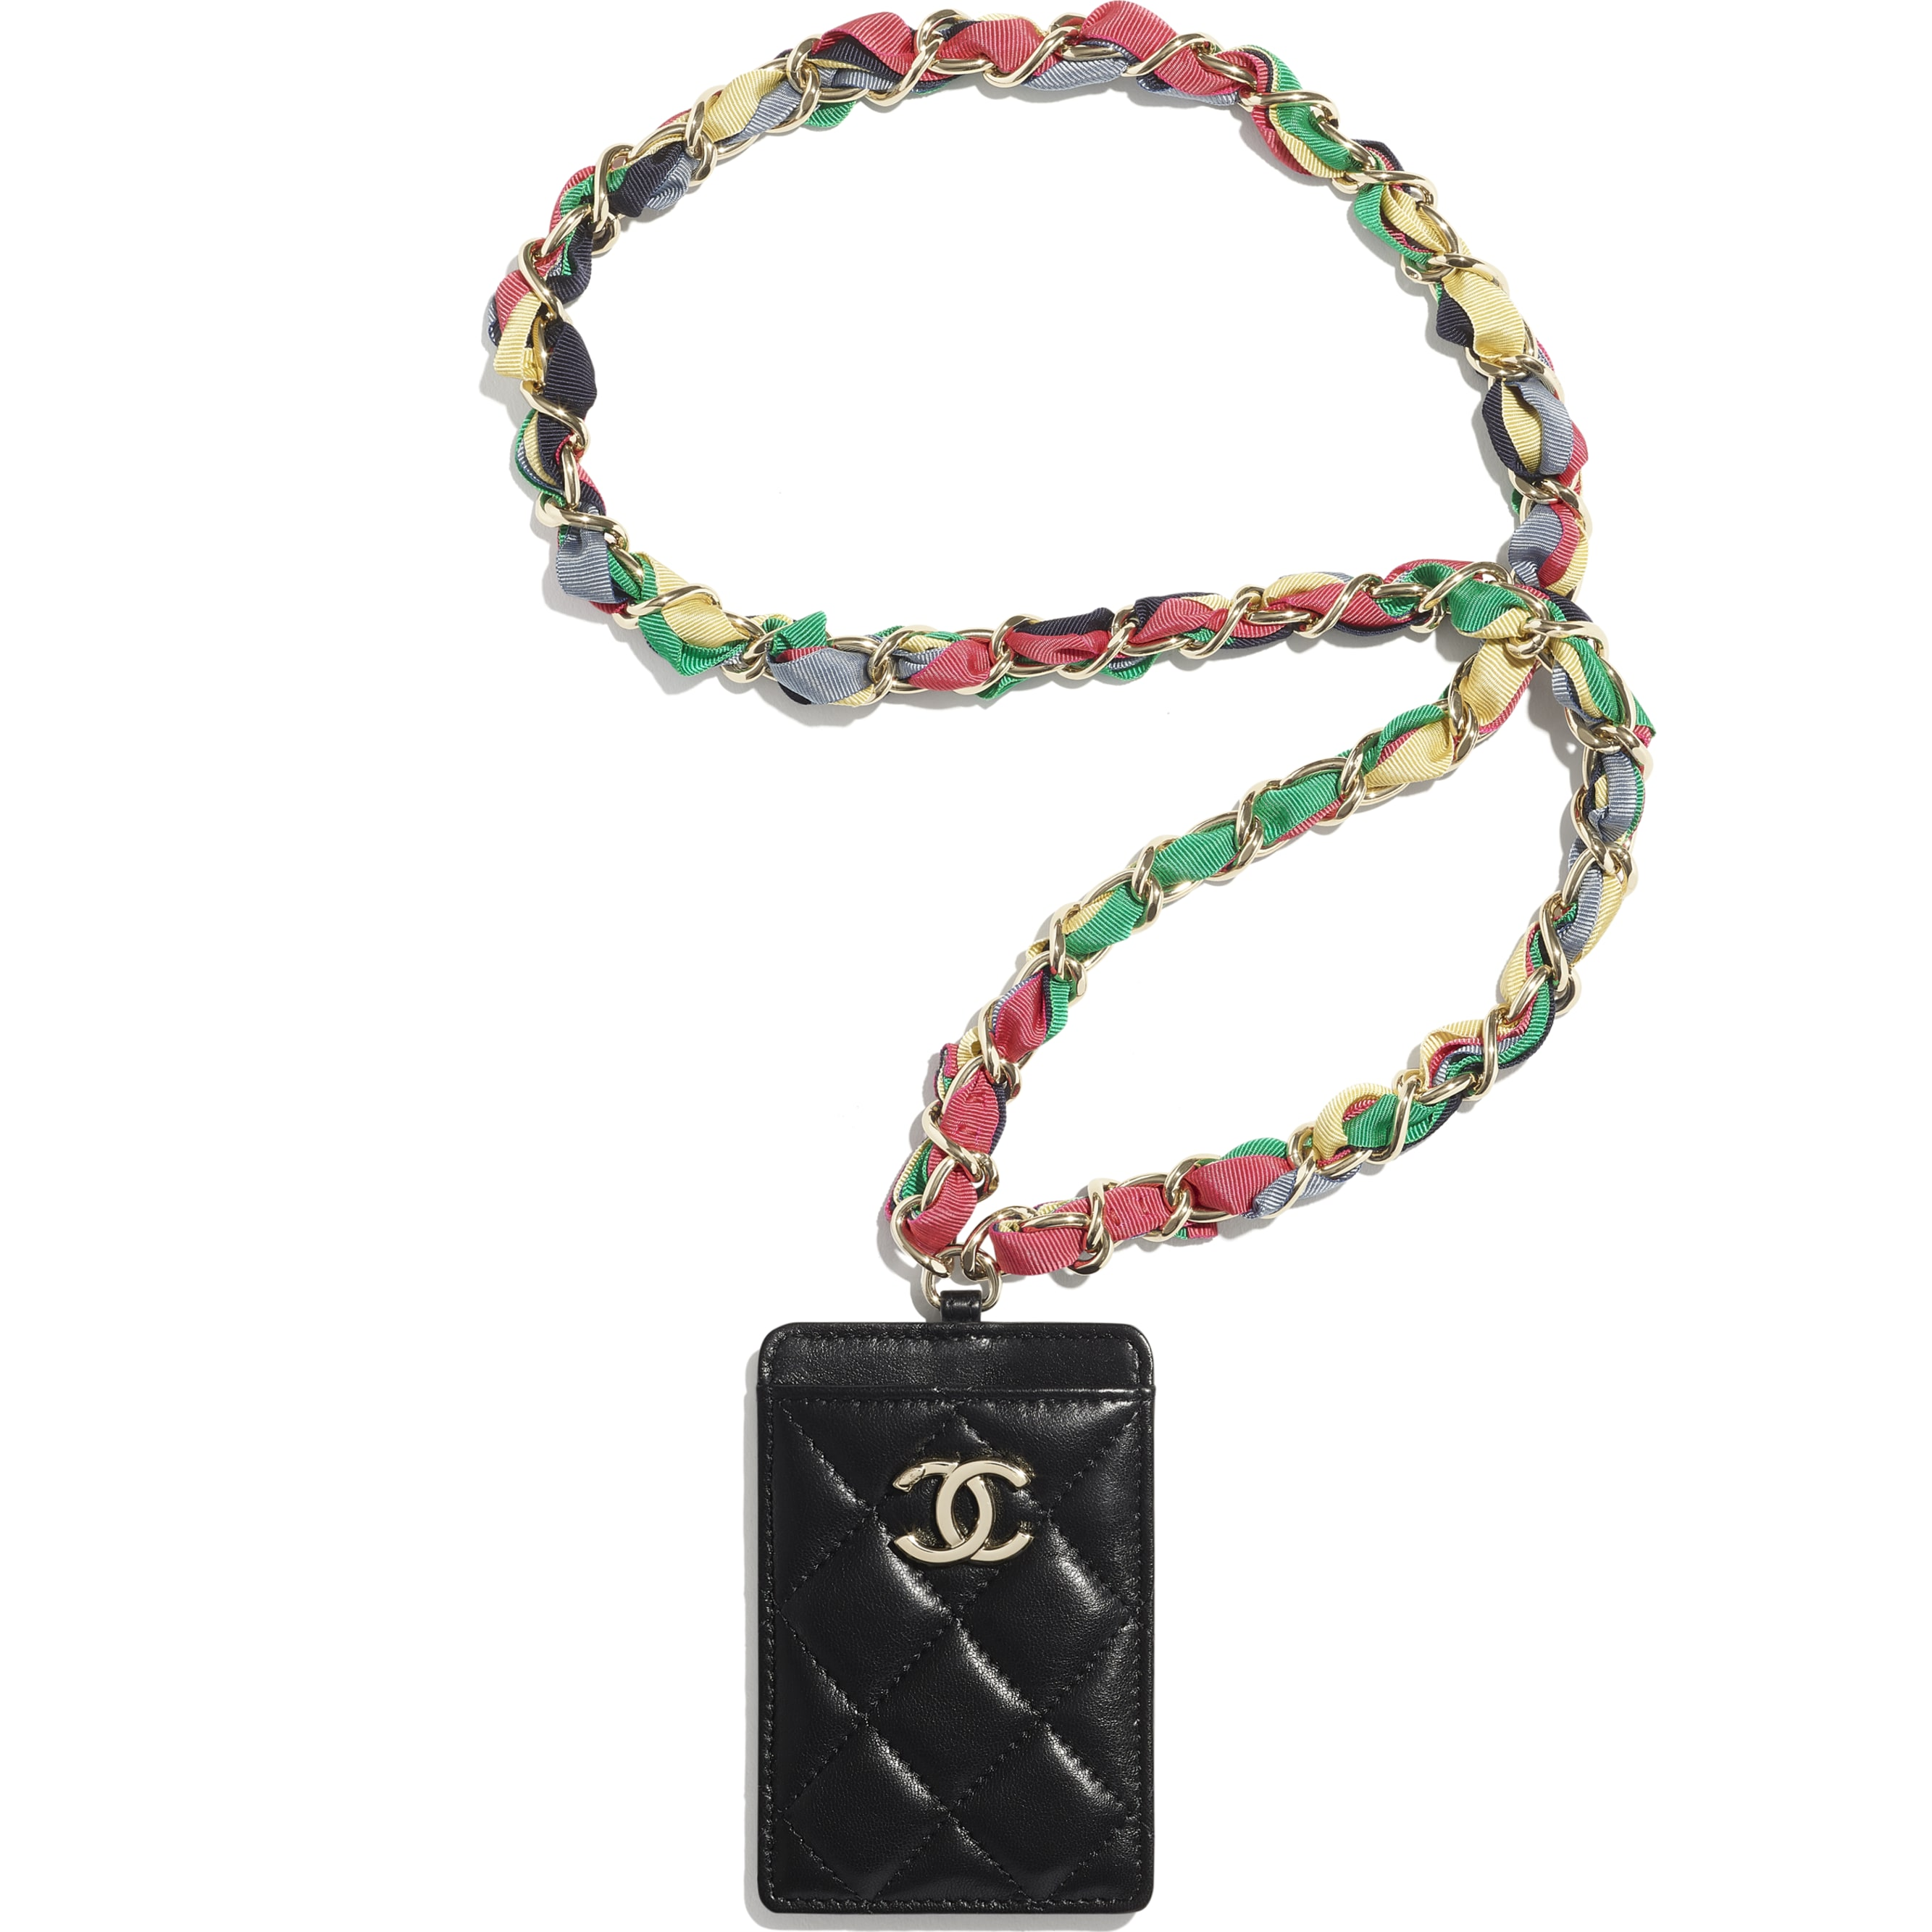 Classic Card Holder with Chain - Black - Shiny Lambskin, Ribbon & Gold-Tone Metal - CHANEL - Default view - see standard sized version